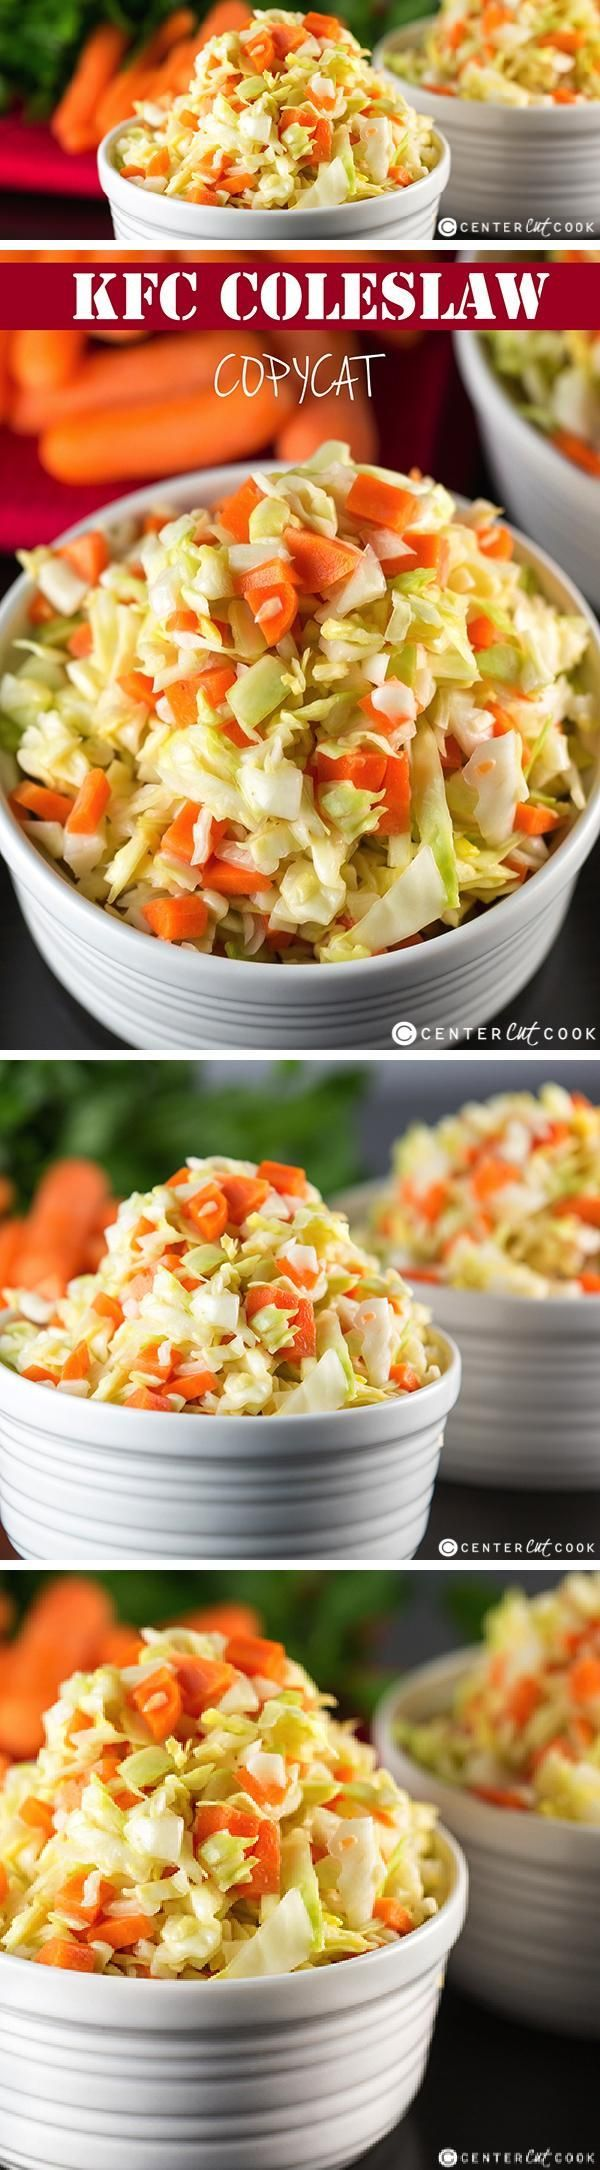 A KFC COLESLAW COPYCAT recipe! The dressing tastes almost identical to the original thanks to one key ingredient. You will be pelasantly surprised at how much this clone tastes like the original KFC Coleslaw.